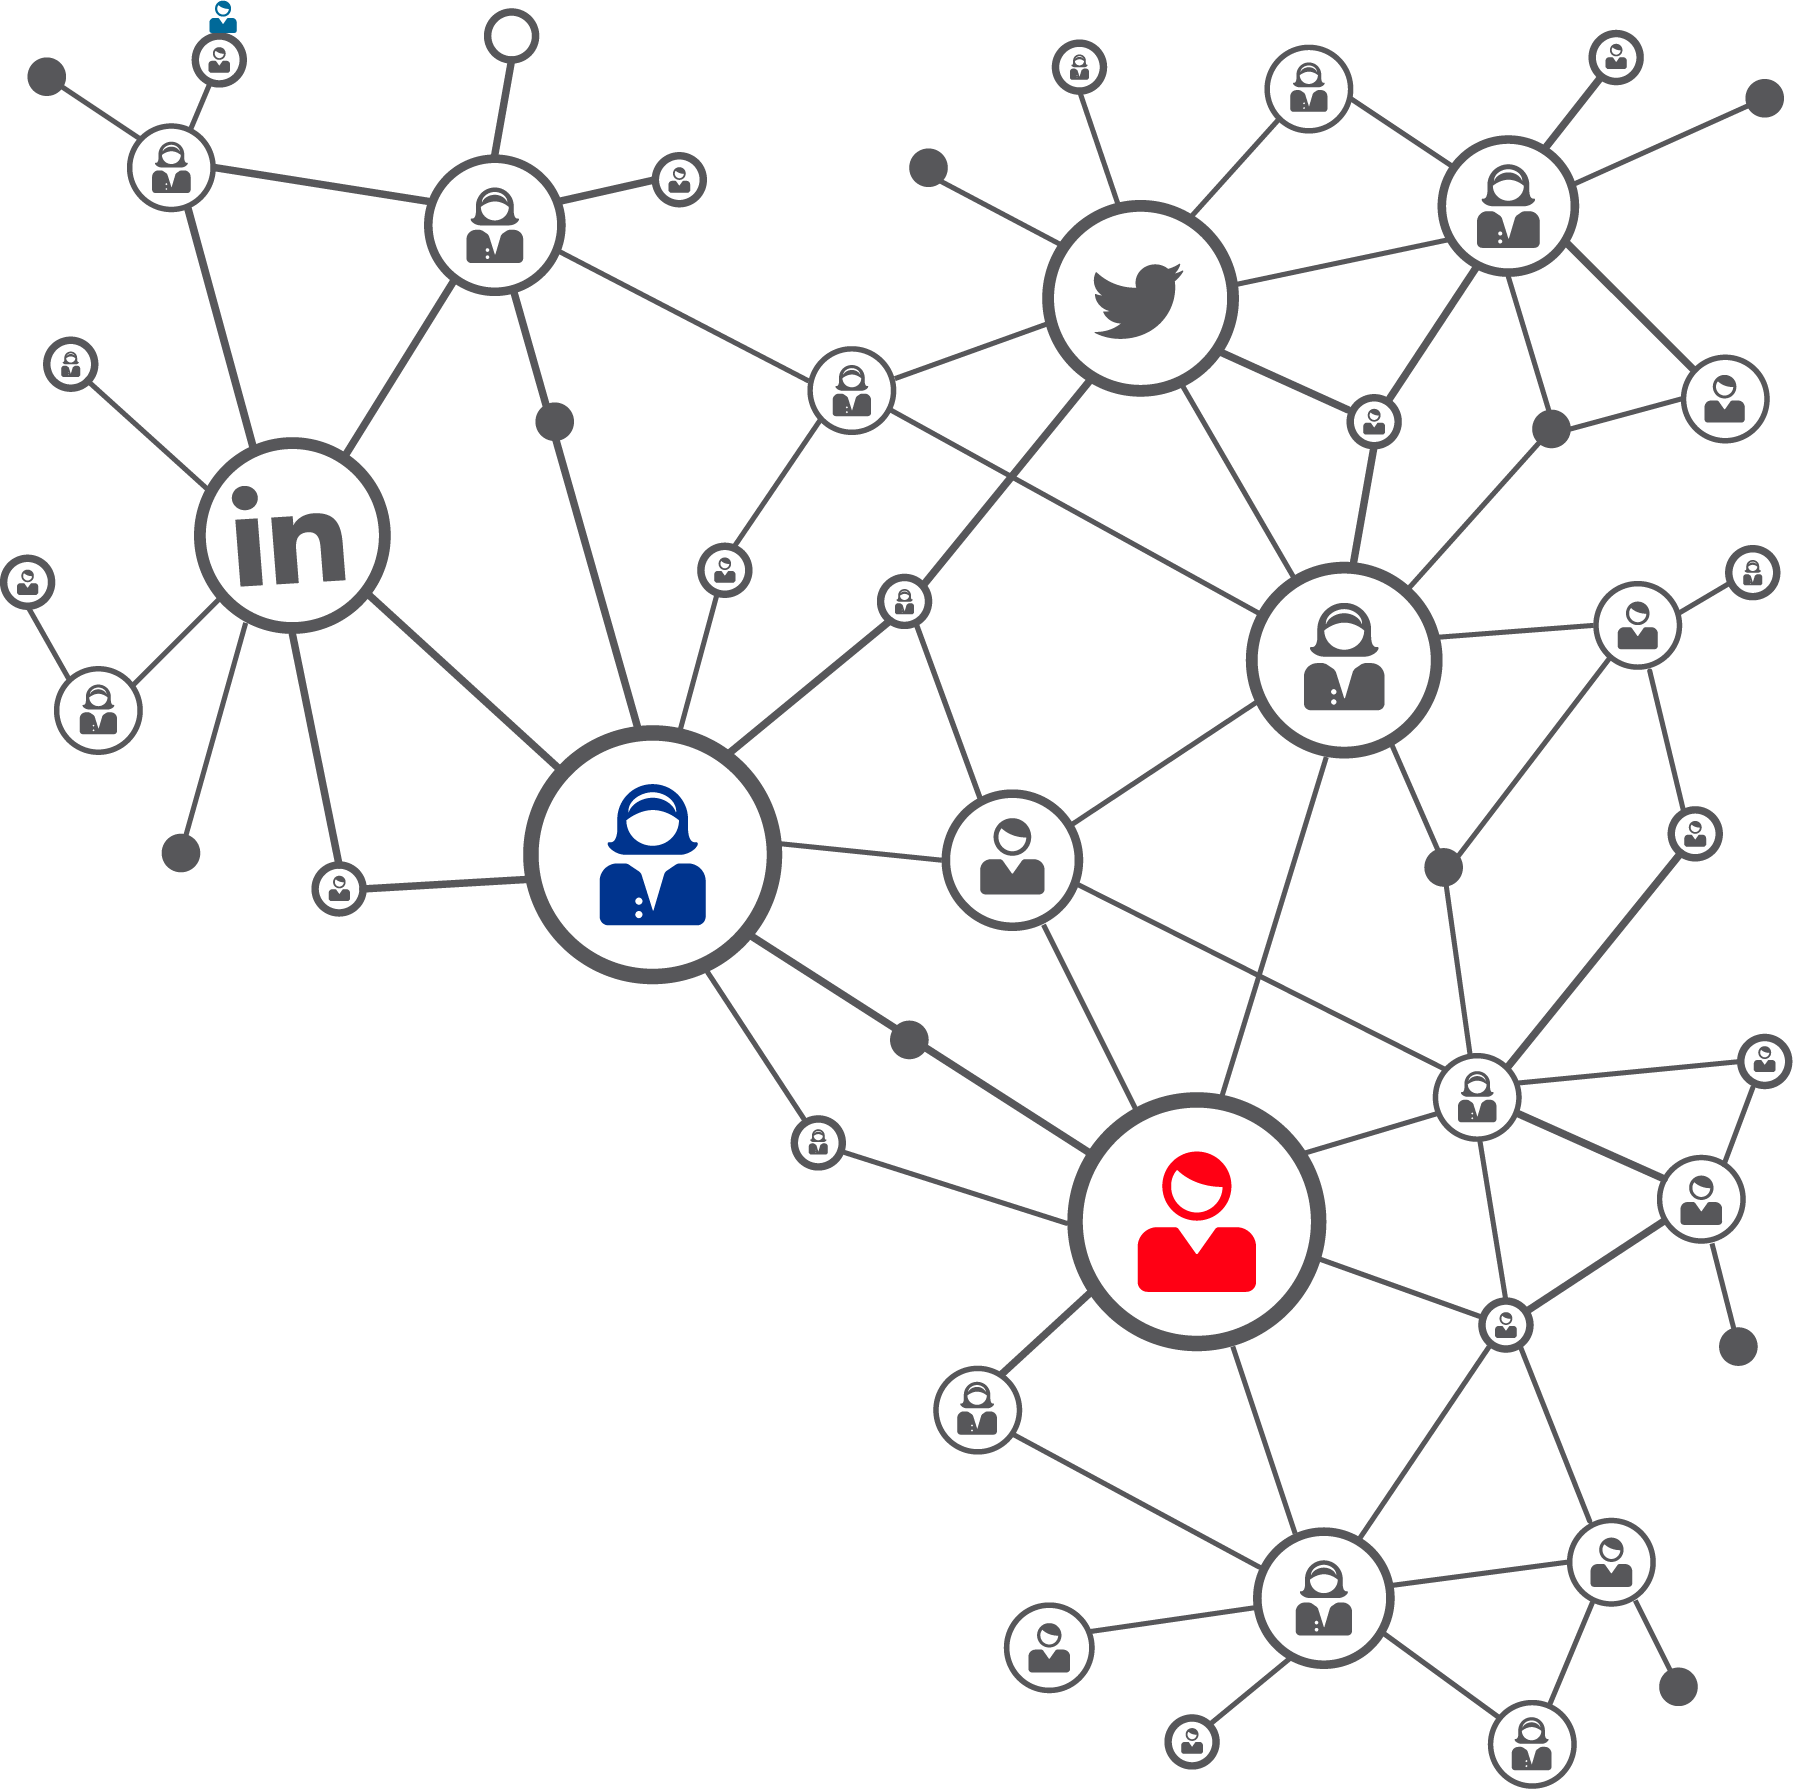 Node And Network Ibm Blockchain Maersk Cryptocurrency PNG Image